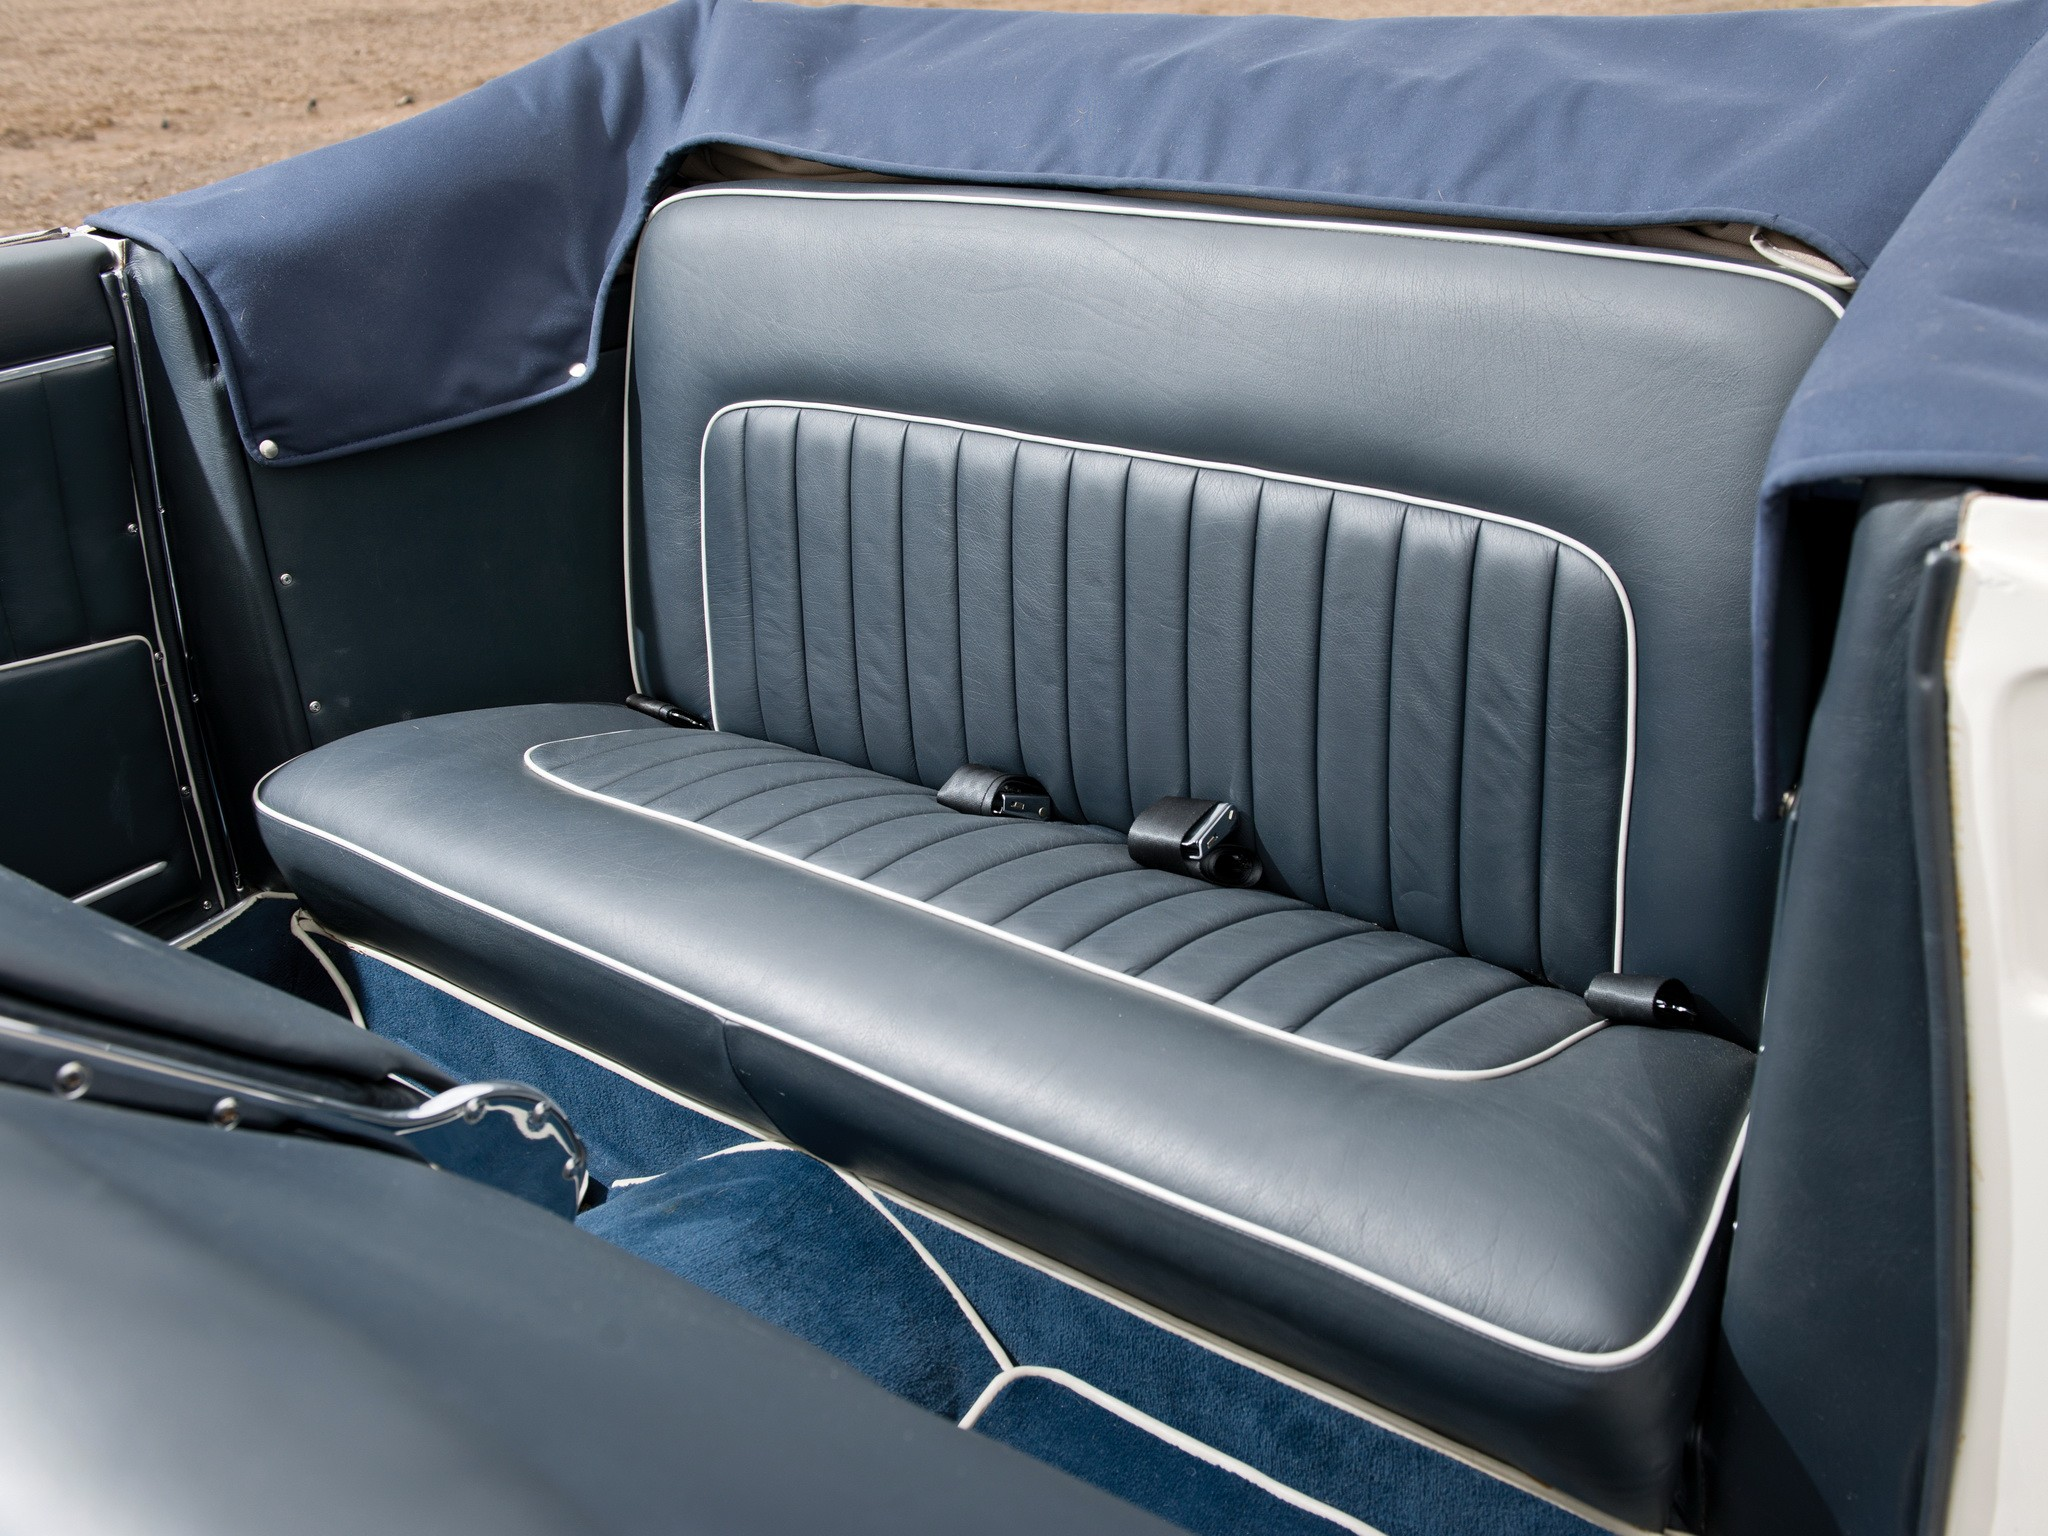 bmw 503 cabriolet specs 1956 1957 1958 1959. Black Bedroom Furniture Sets. Home Design Ideas